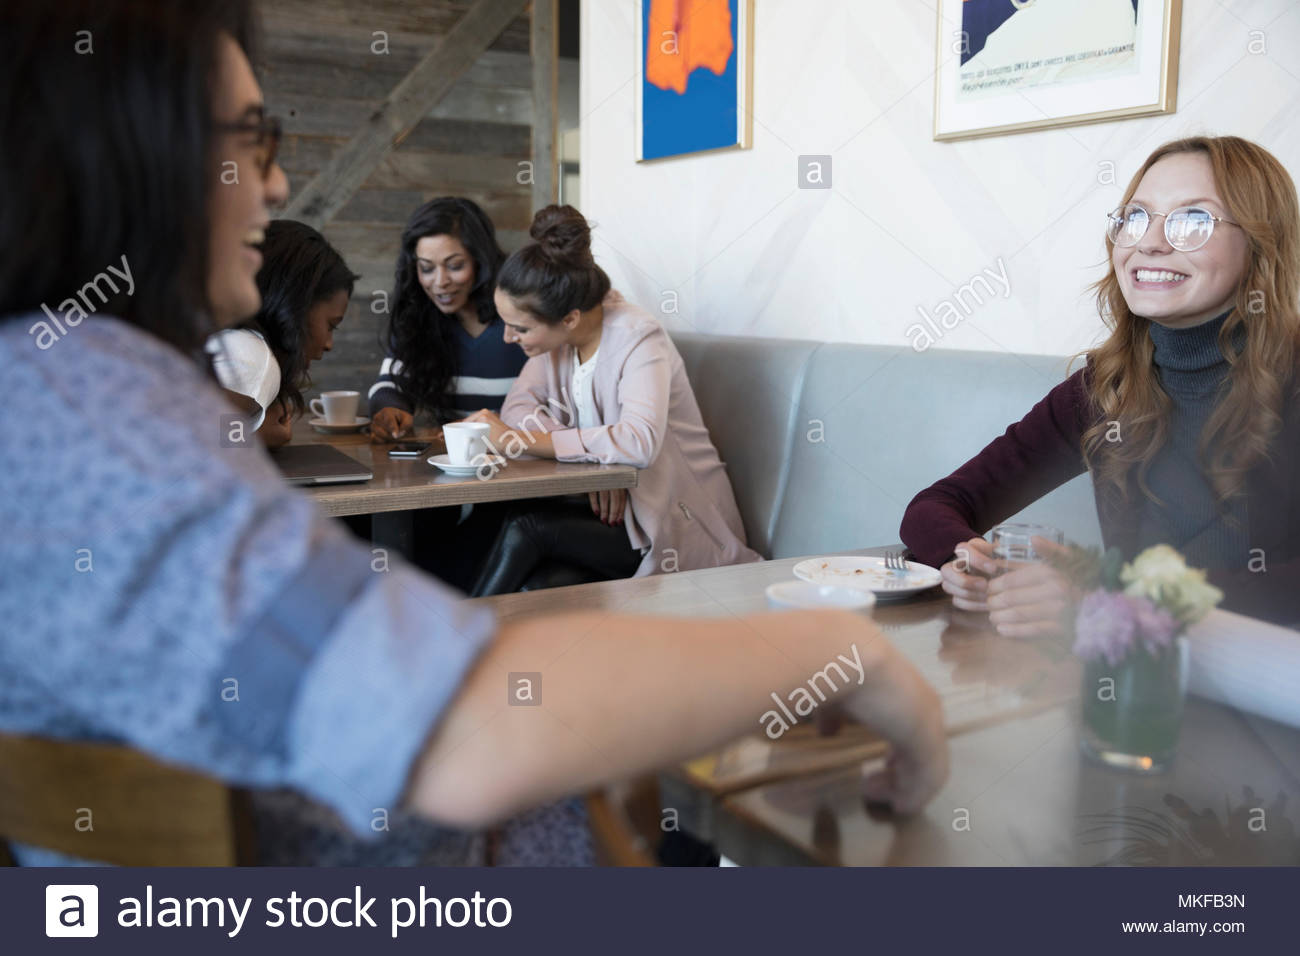 Smiling, happy couple talking in cafe Stock Photo